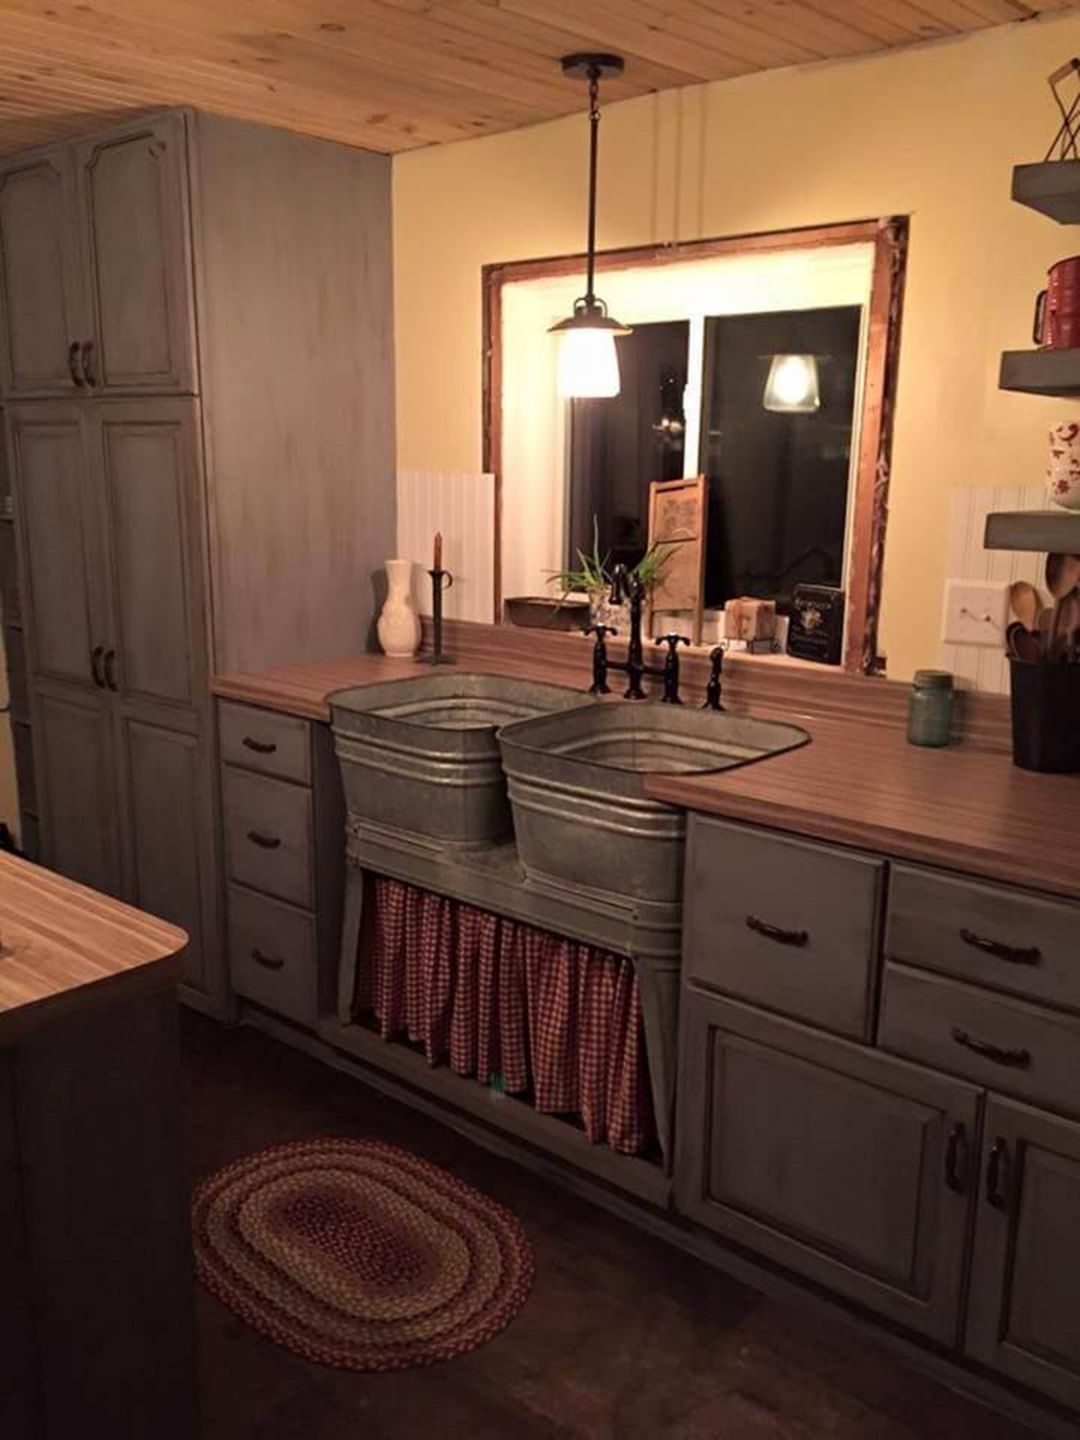 Tiny House Kitchen Farmhouse Sink Kitchen Rustic Kitchen Cabinets Rustic House Rustic K In 2020 Tiny House Kitchen Rustic Kitchen Cabinets Rustic Kitchen